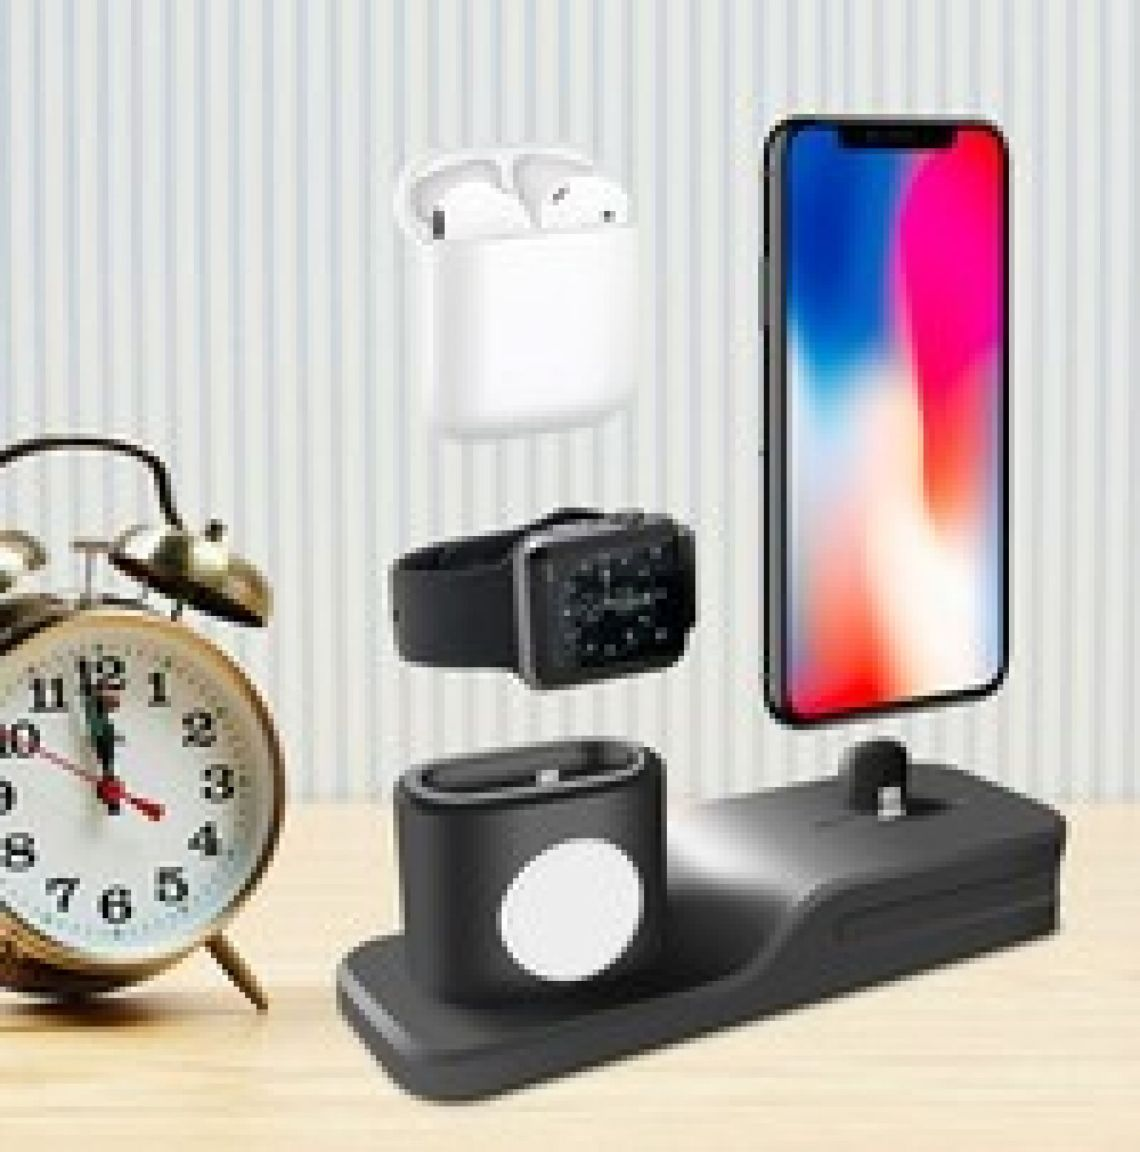 Environmental Silicone 4-in-1 for IPhone, AirPods, Apple pencil watch Portable Charging Base